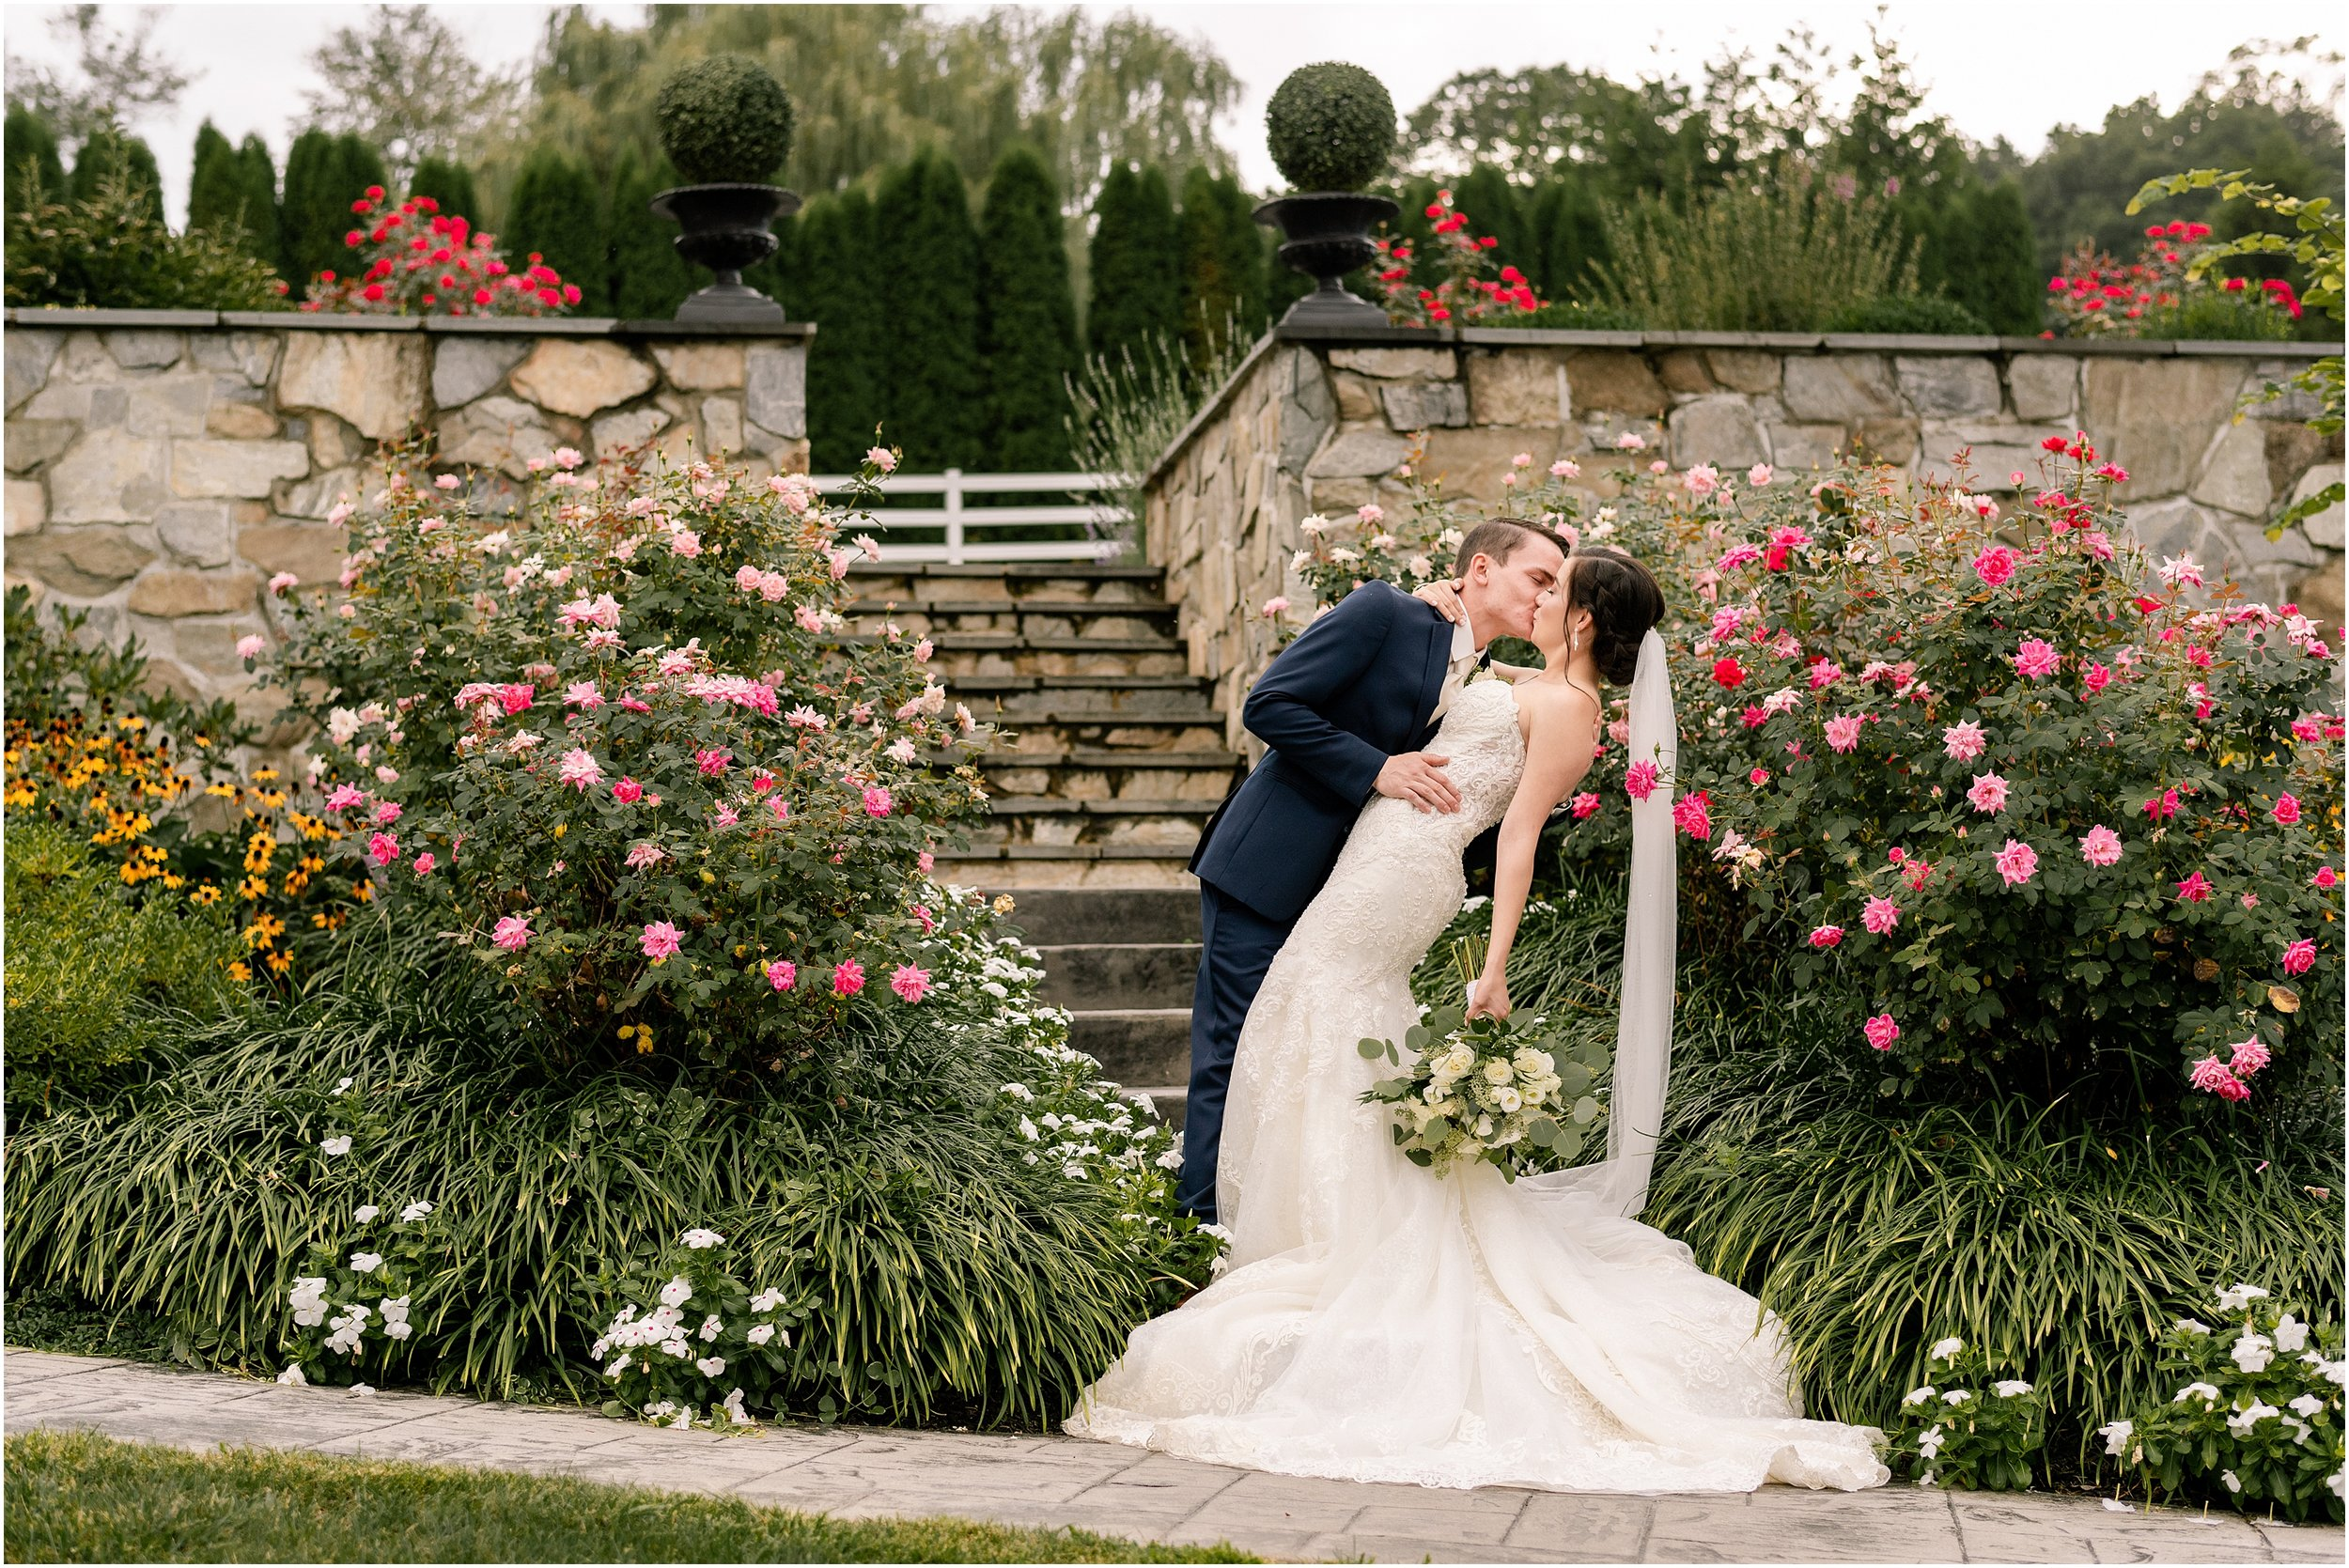 hannah leigh photography Pond View Farm Wedding White Hall MD_3648.jpg